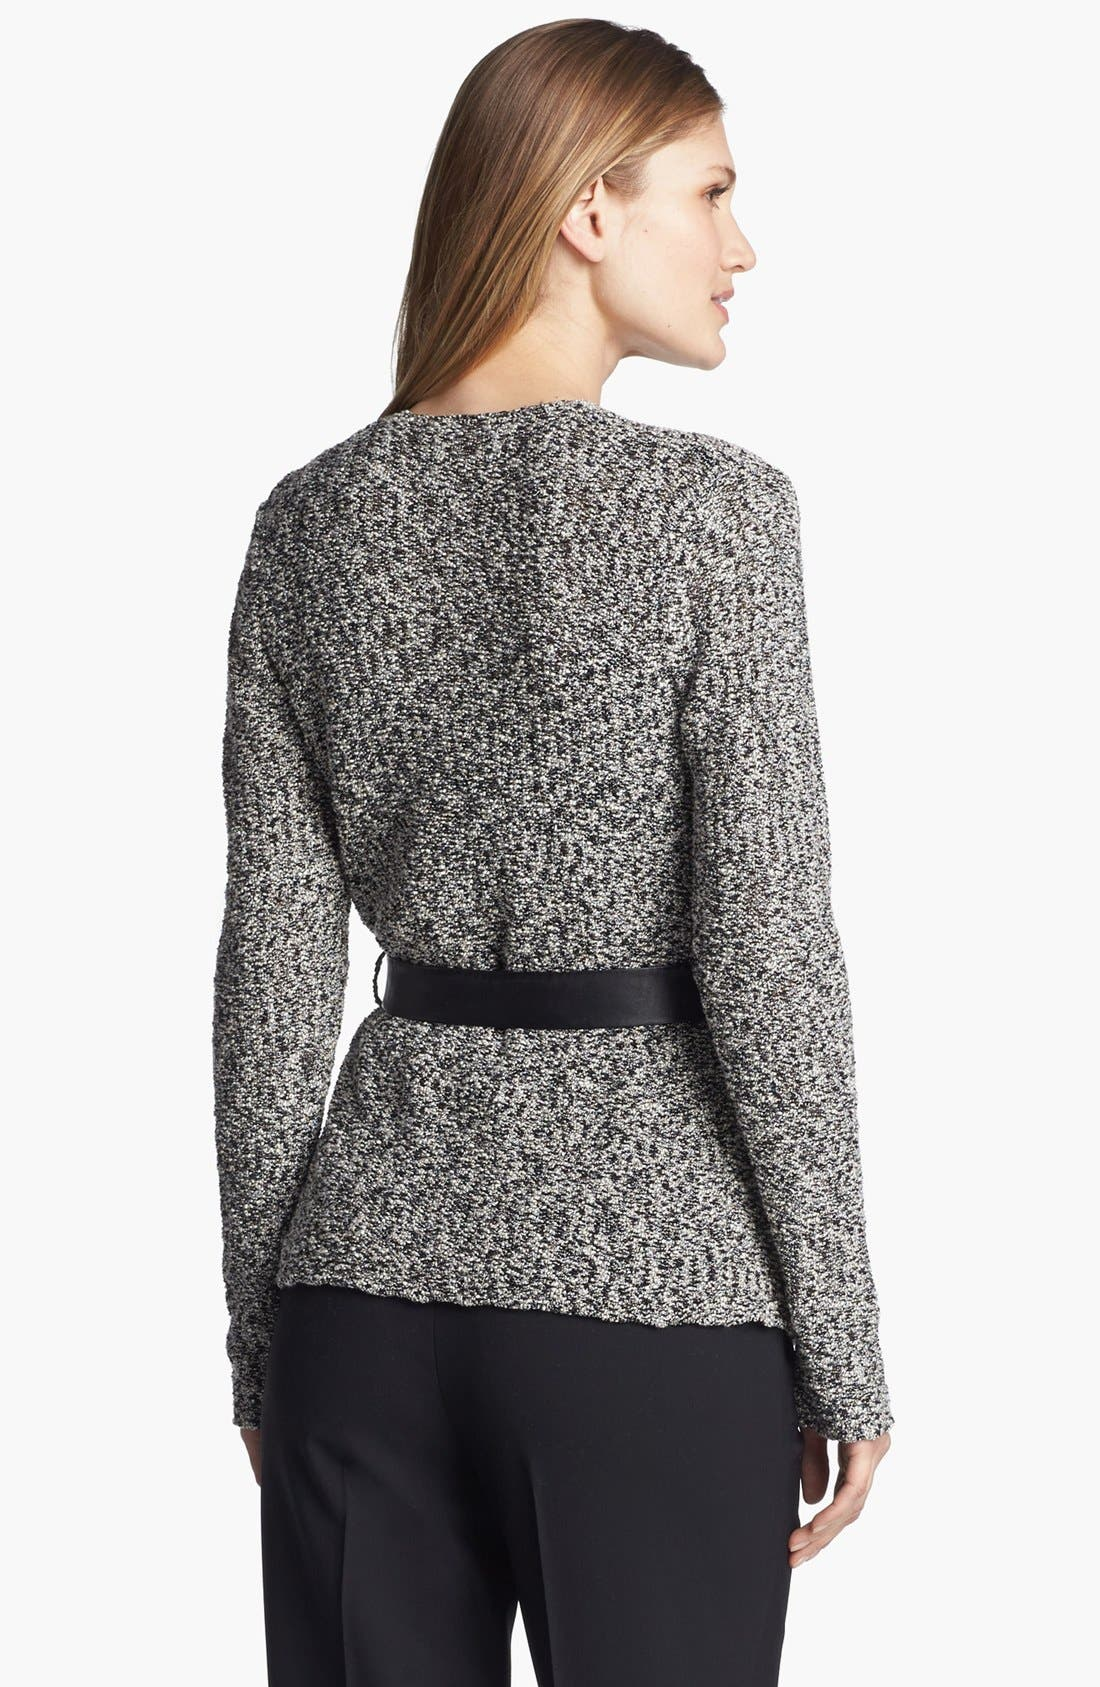 'Gallo' Belted Sweater Jacket,                             Alternate thumbnail 3, color,                             001